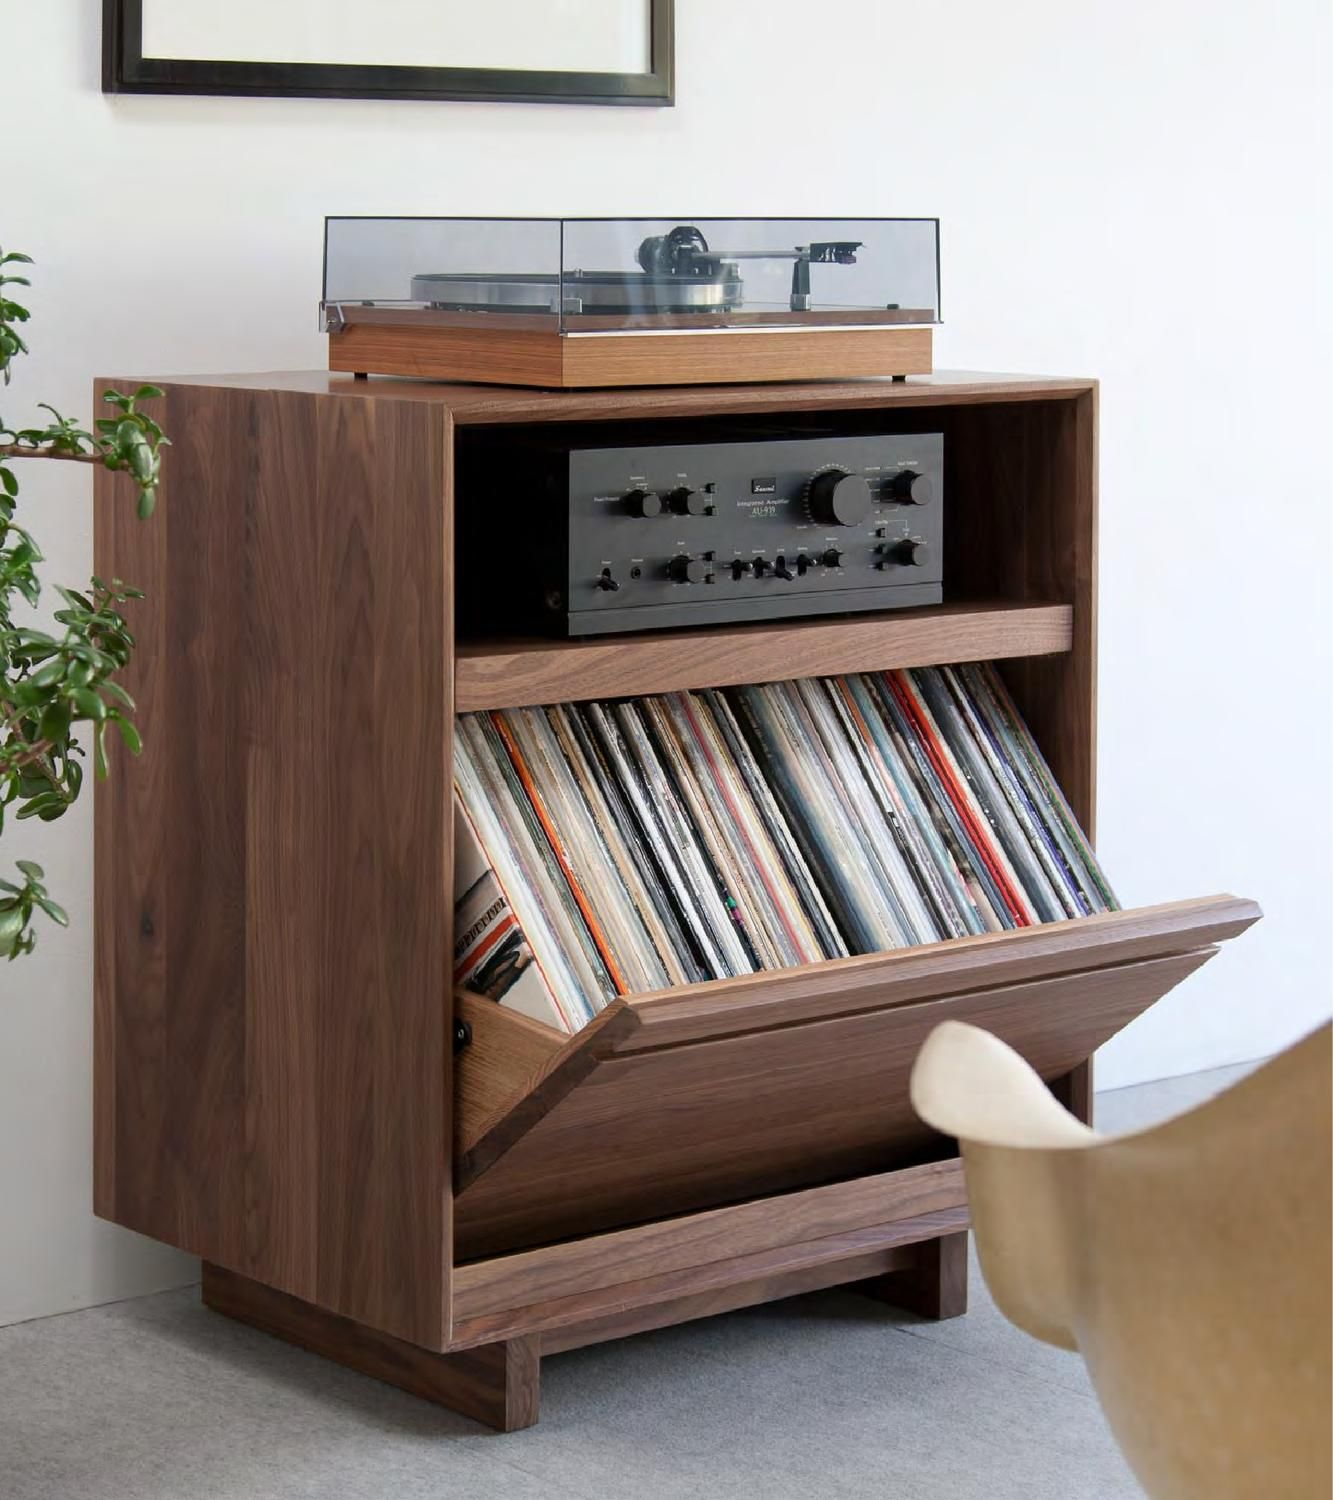 lp album storage cabinet